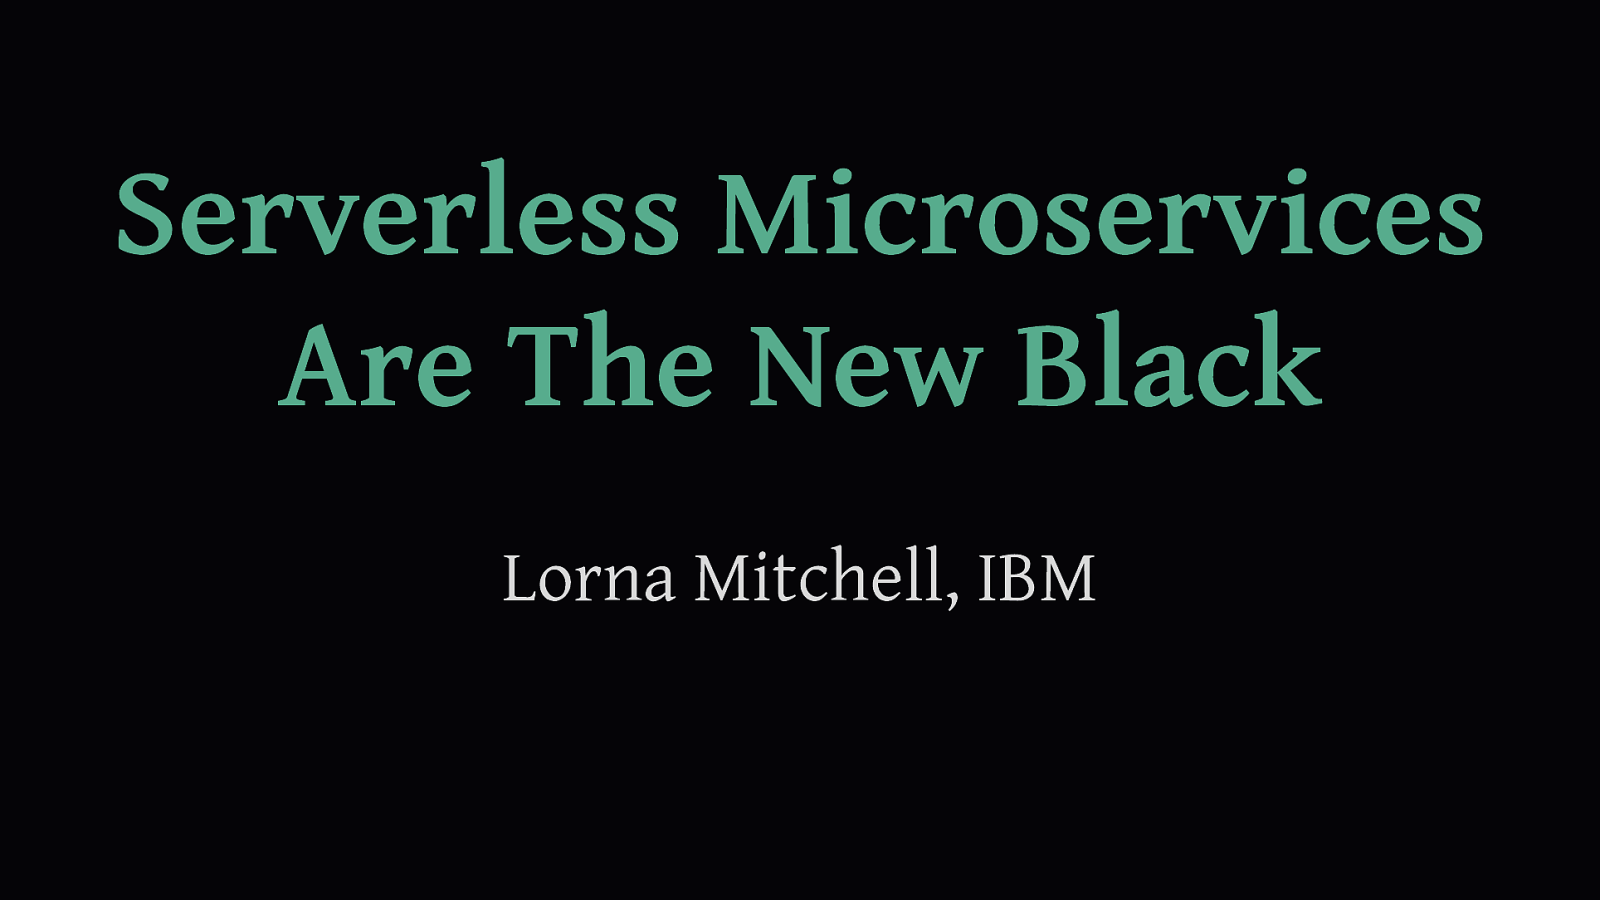 Serverless Microservices are the New Black